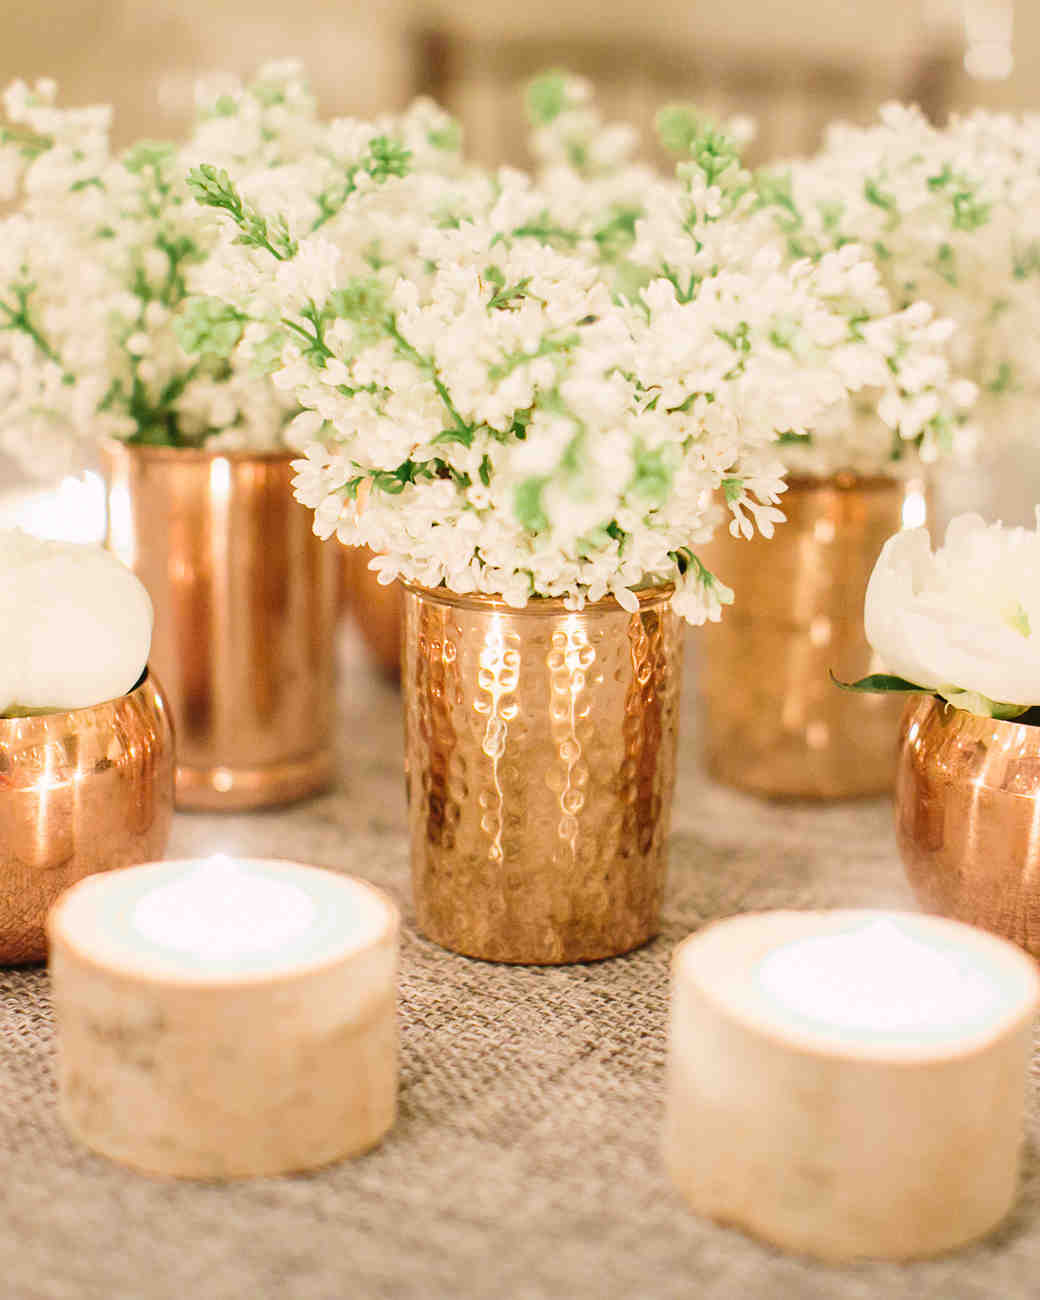 19 tips for throwing the ultimate winter bridal shower Wedding shower centerpieces